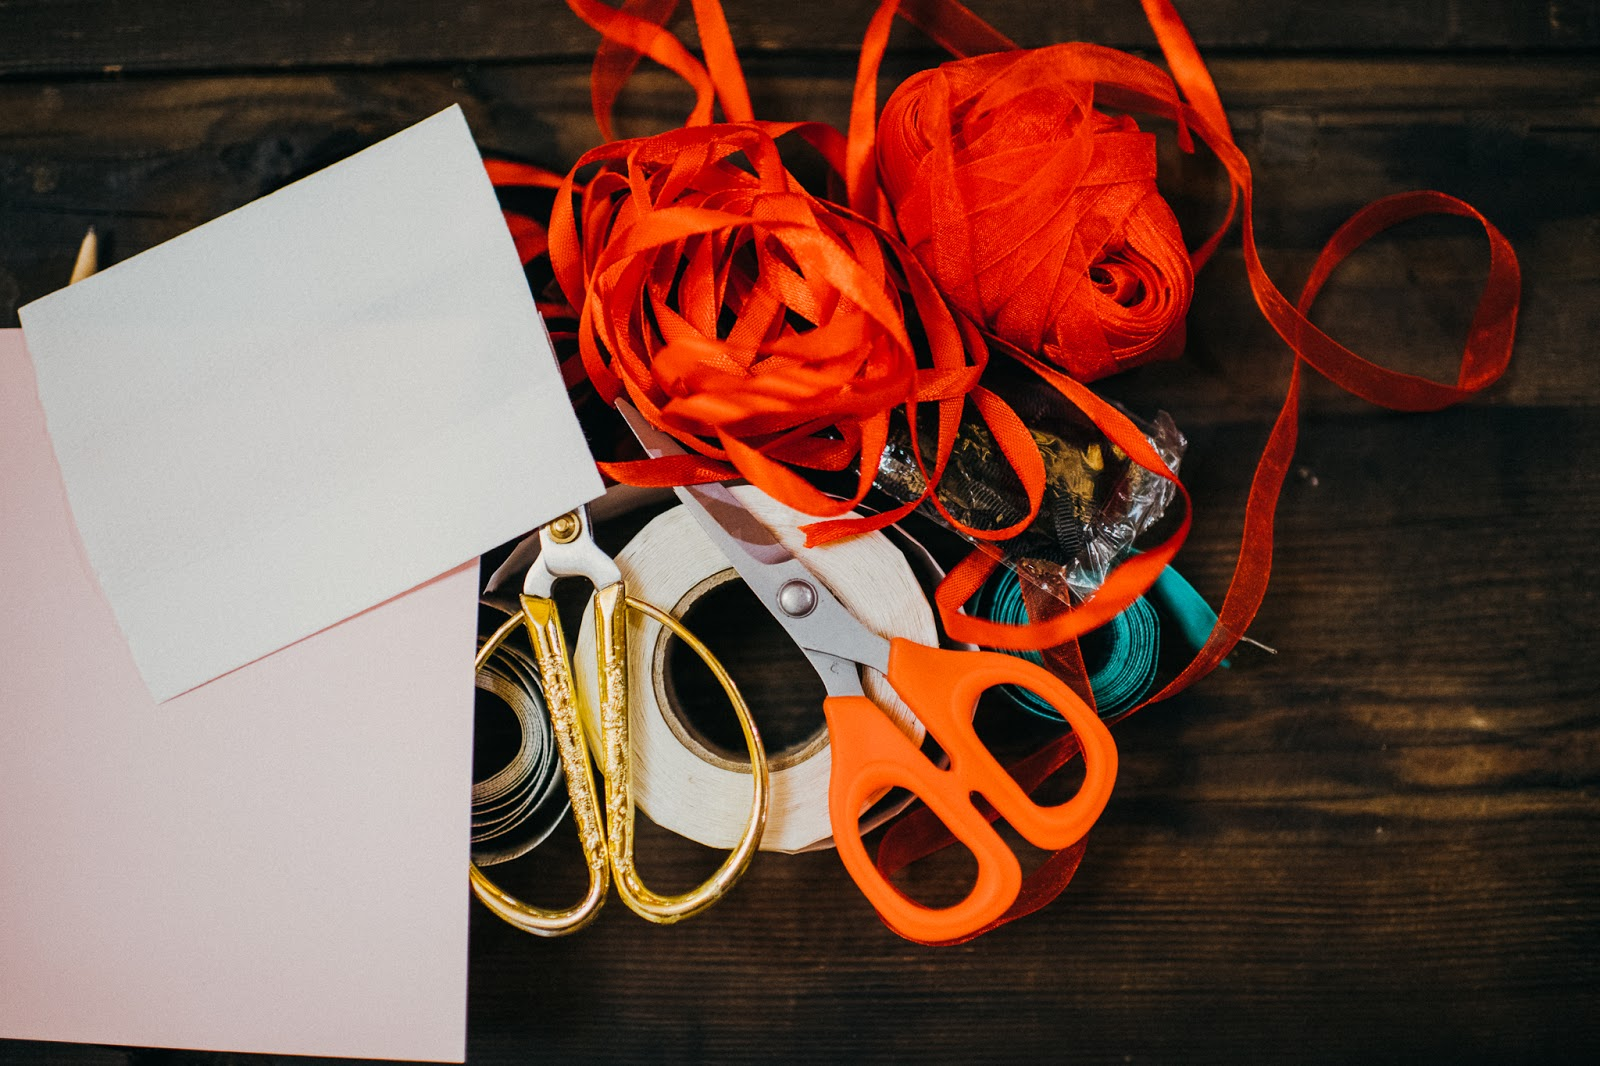 A flat lay of gold scissors and various ribbons, tape and card.